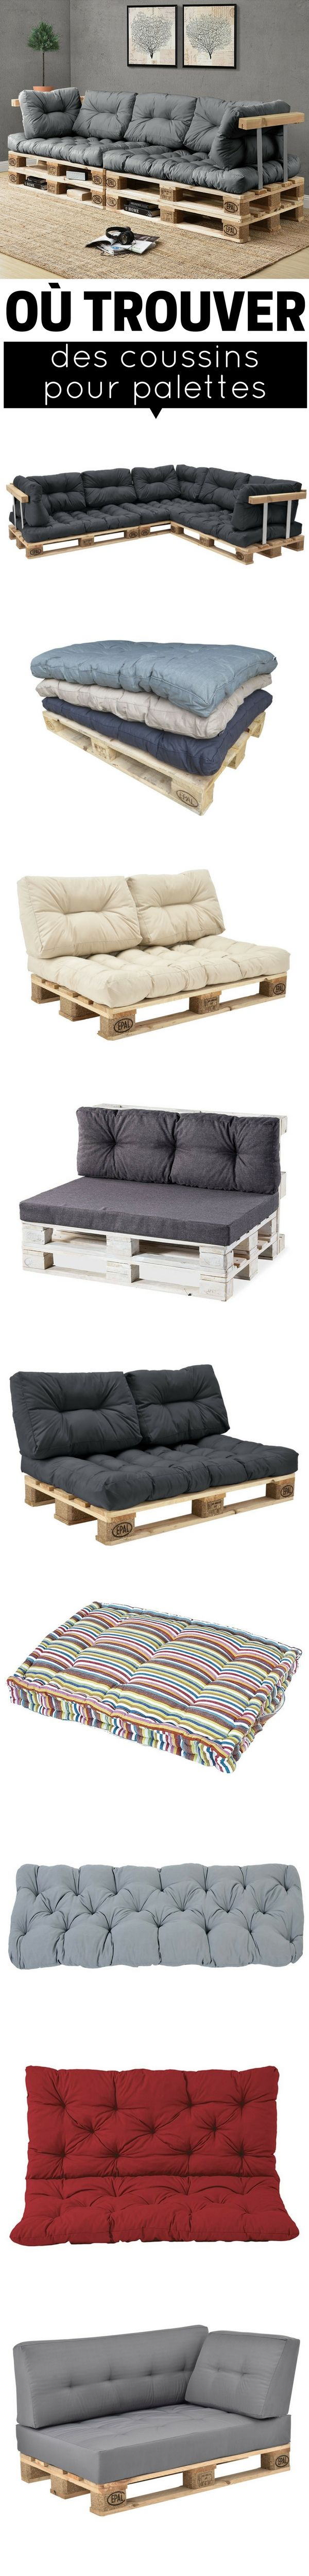 les 25 meilleures id es de la cat gorie auvent sur pinterest auvent bois petit patio couvert. Black Bedroom Furniture Sets. Home Design Ideas